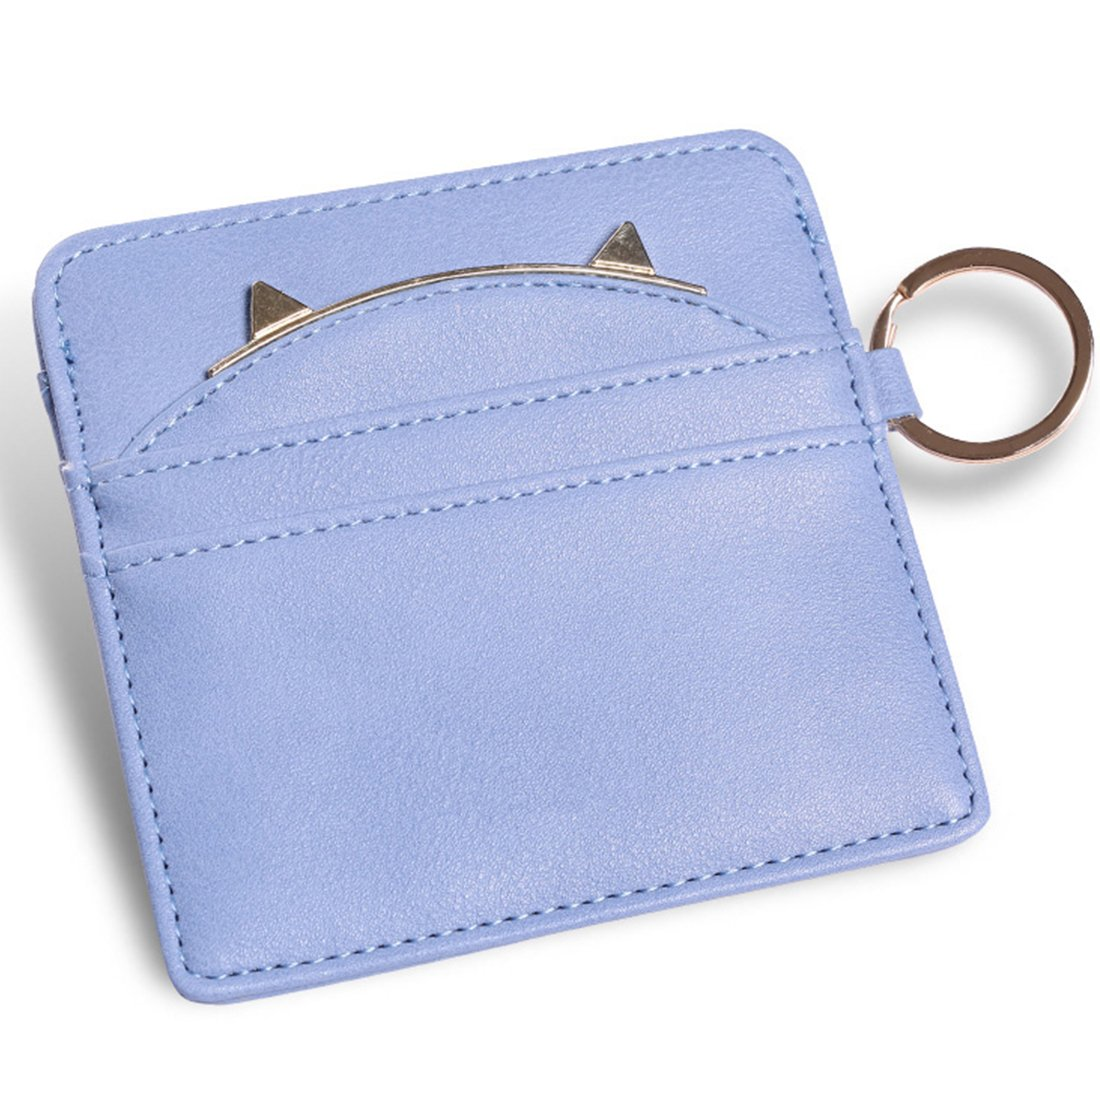 Nico Louise Cat Ear Leather Coin Purses Women Key Chain Credit Card Holders Girls Wallet (Blue)